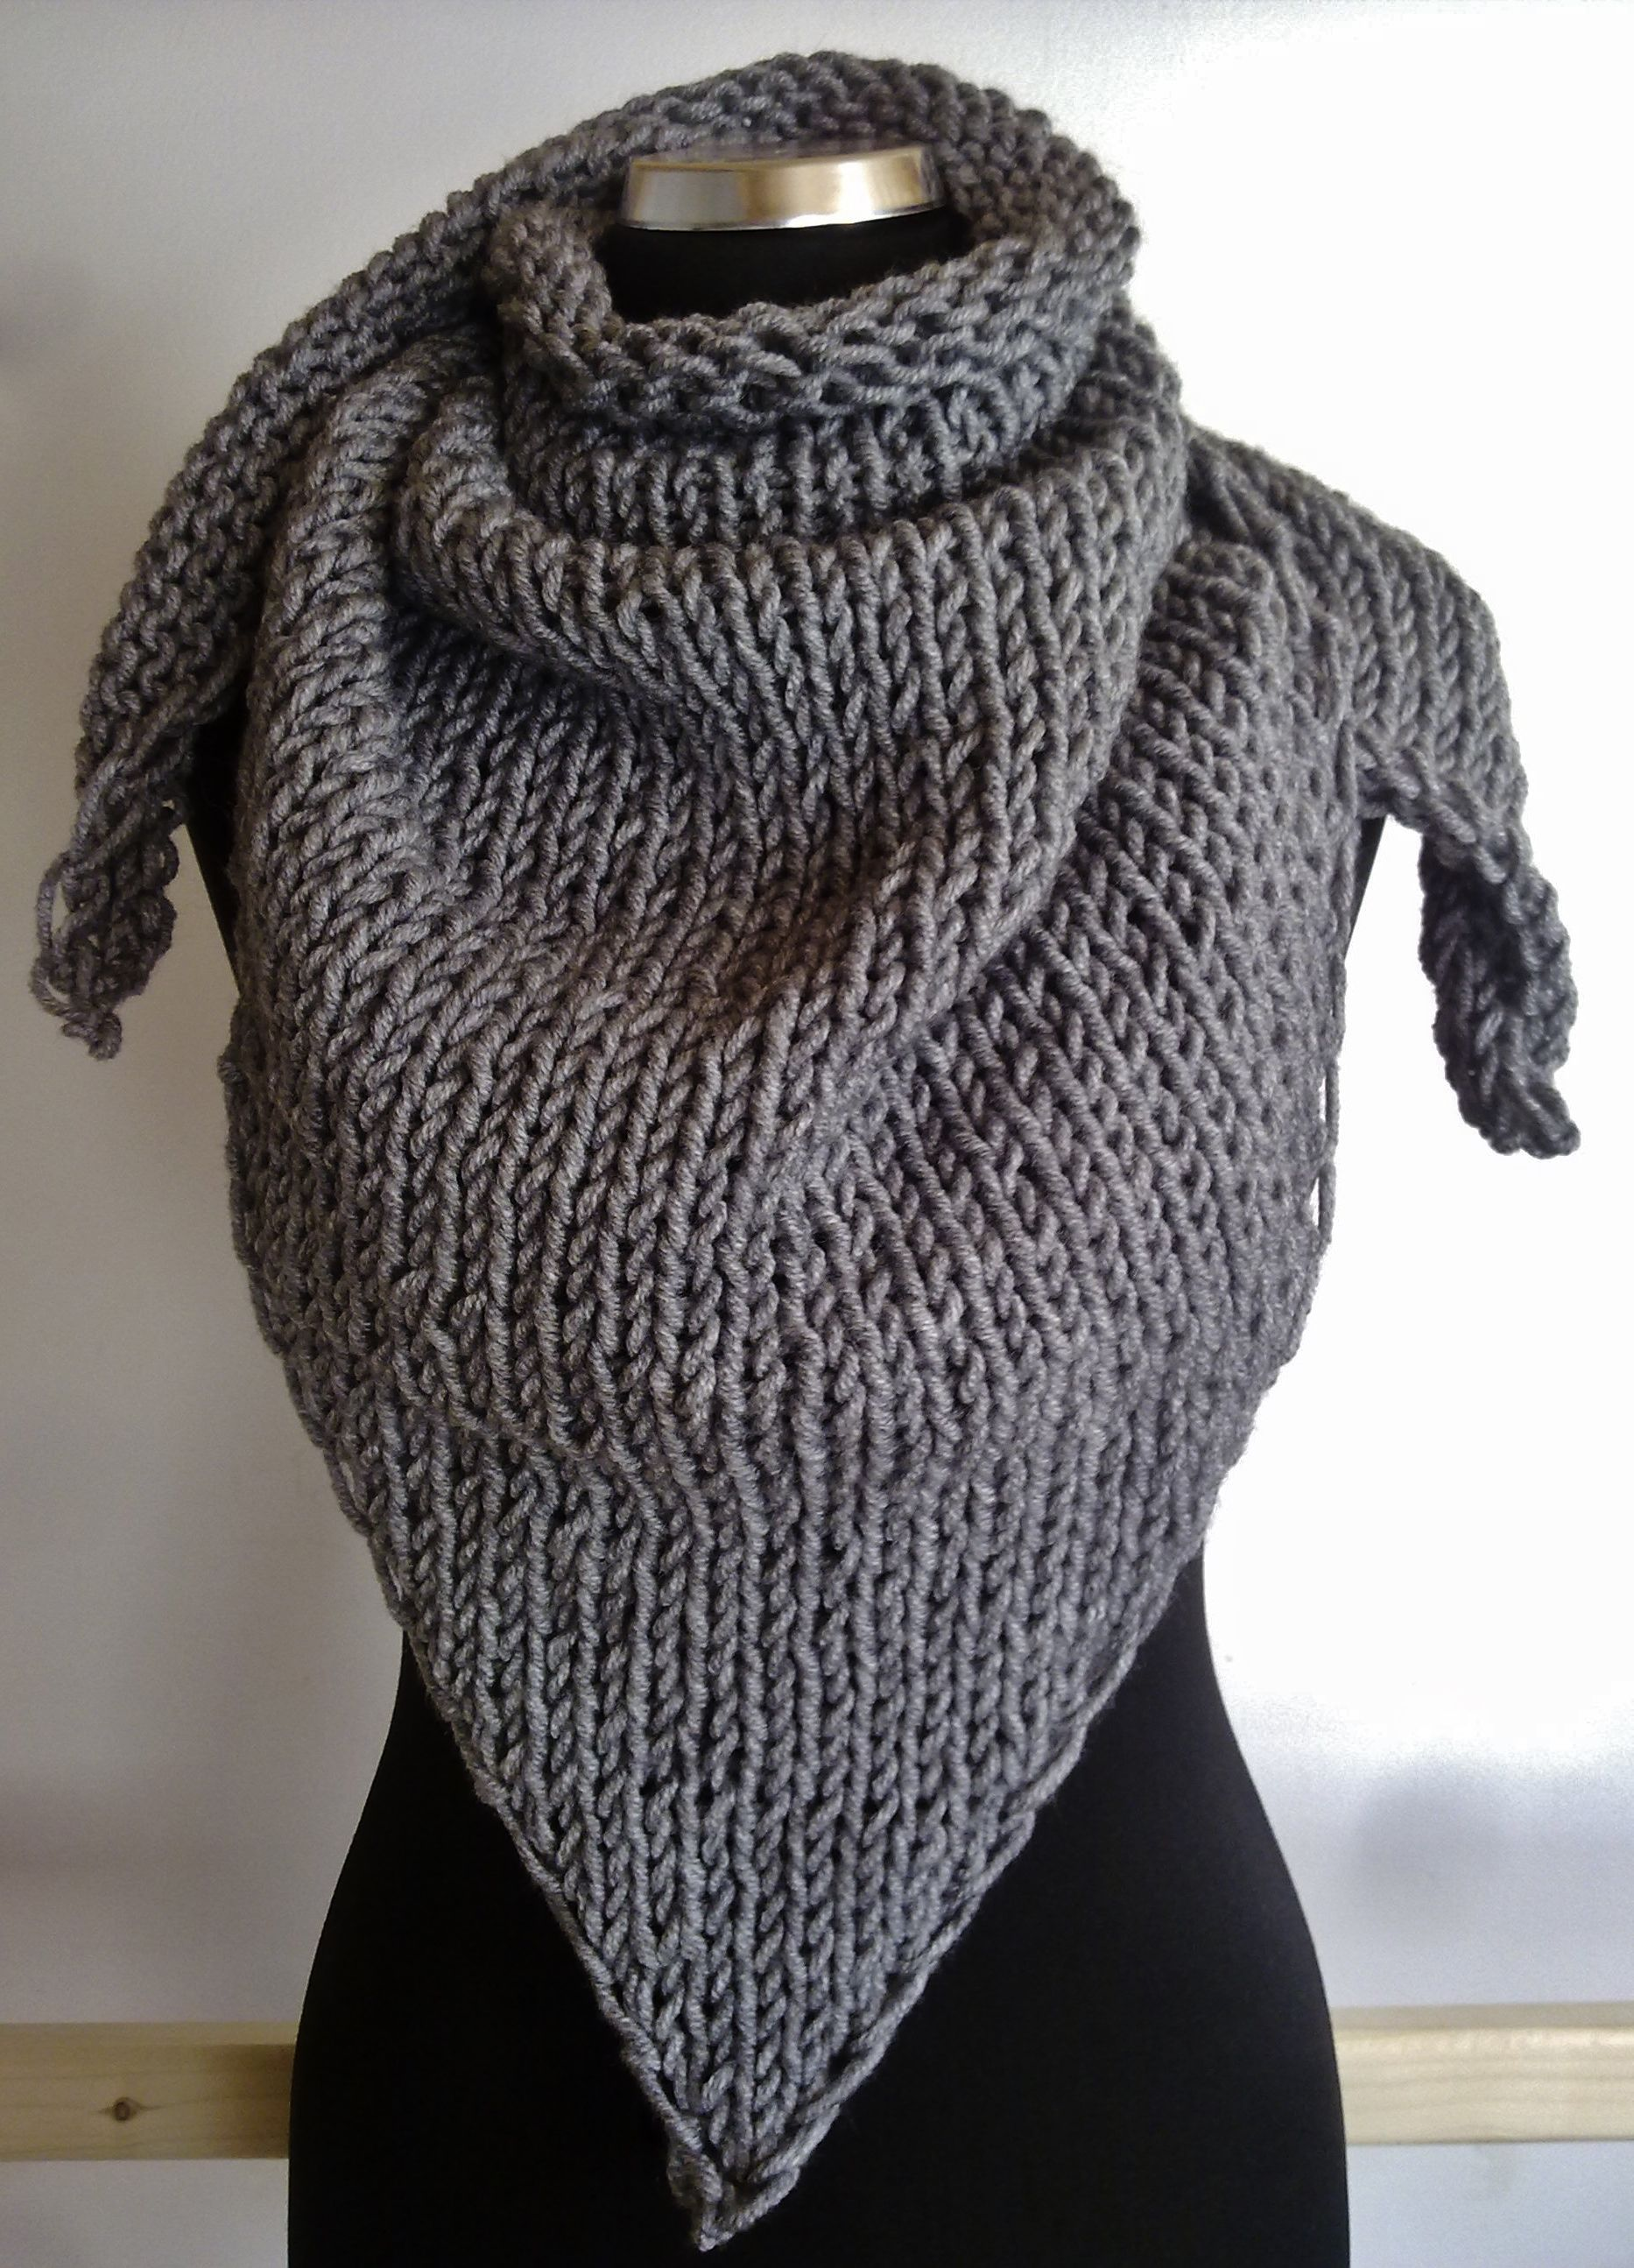 big #grey #handknitted #kerchief  for cold winter days ^^ KrisztiKecskes - fall/winter 2014